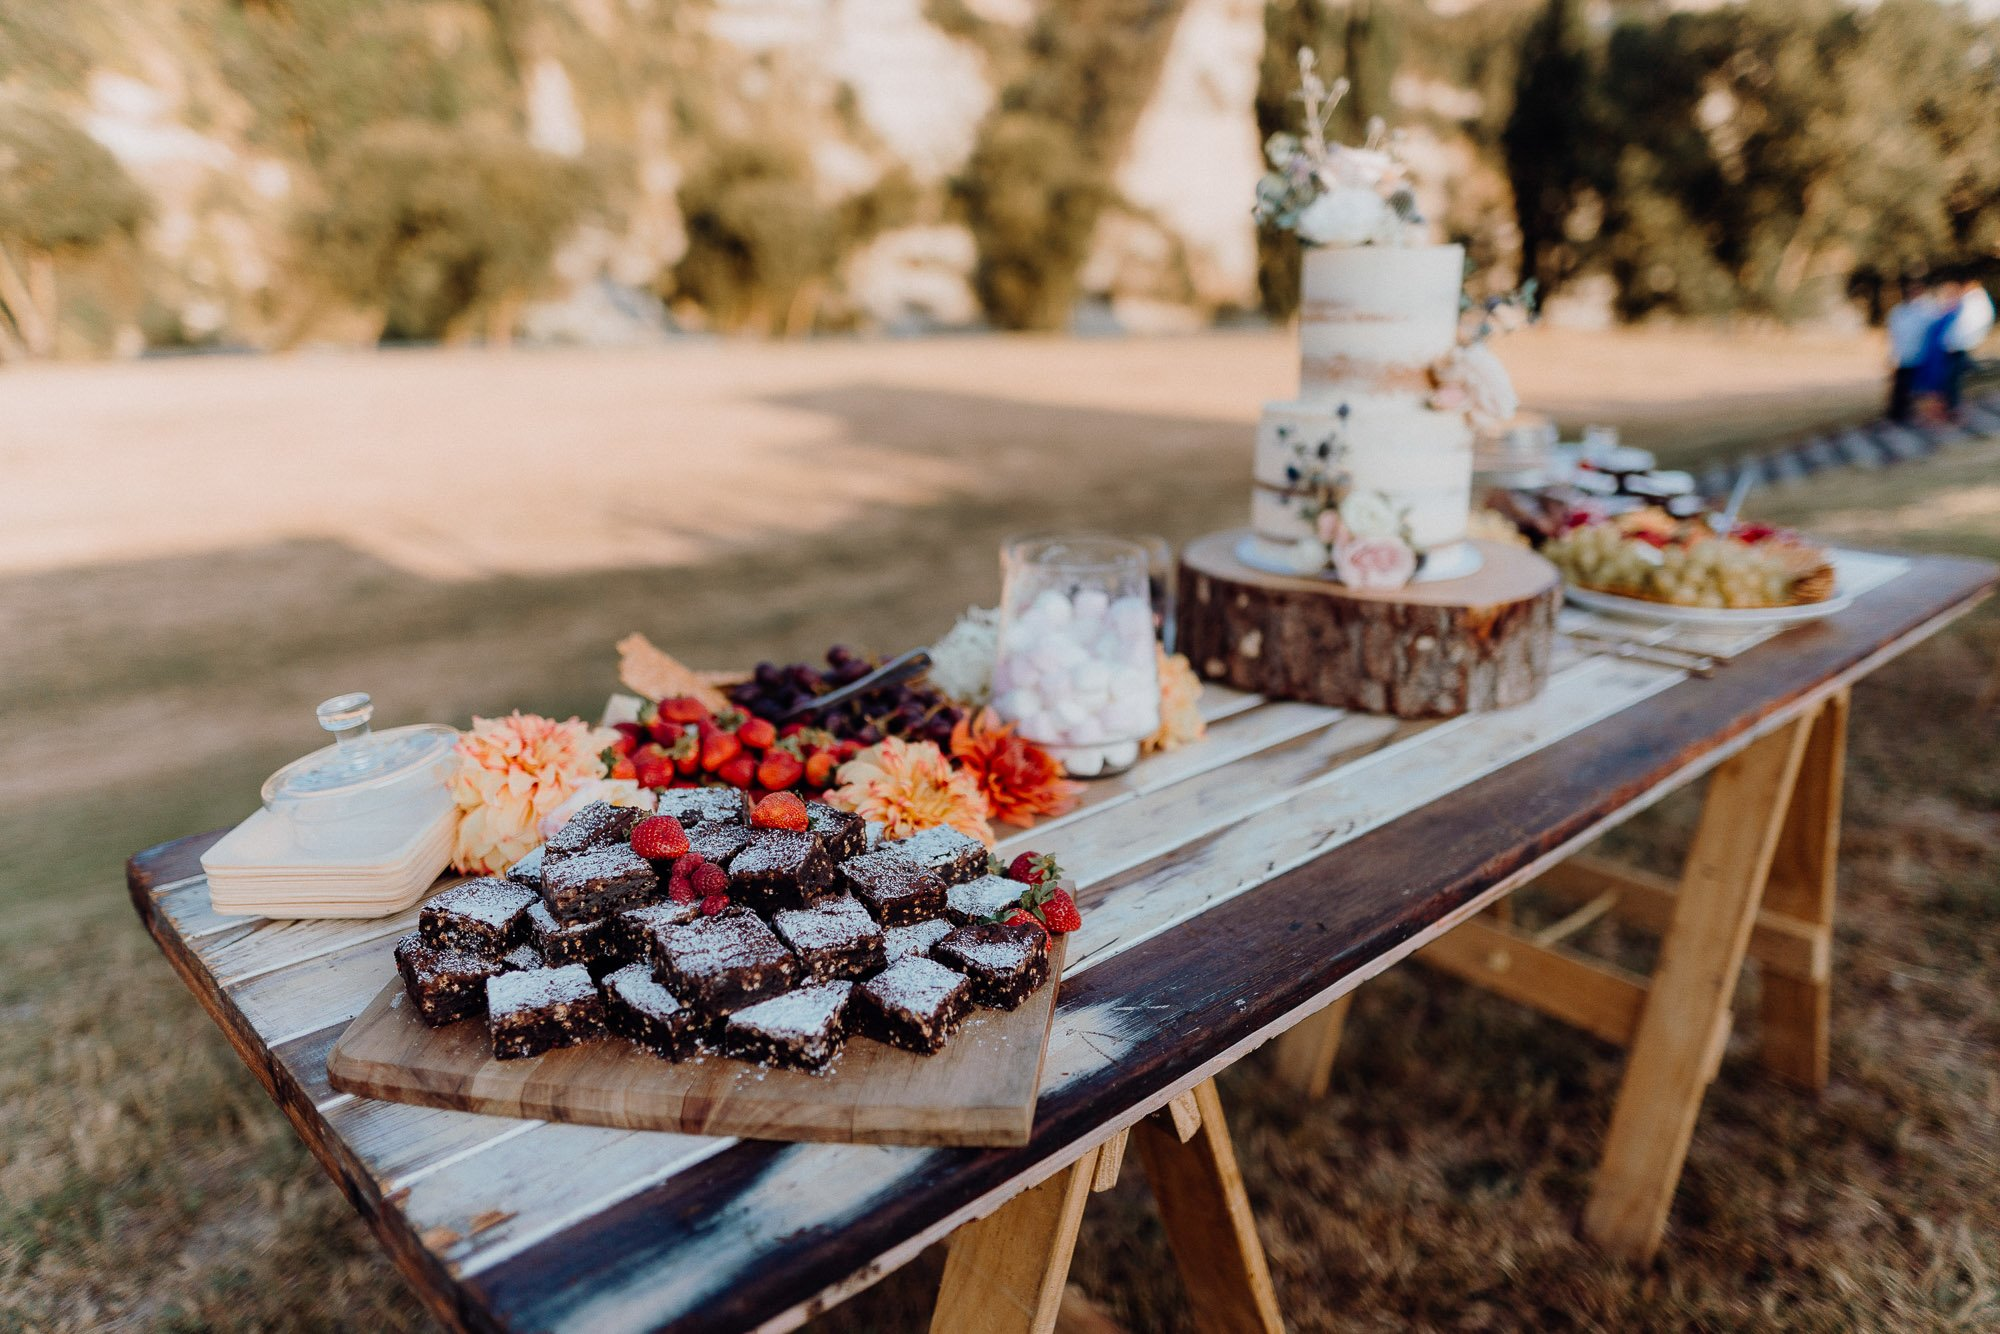 Wedding Photography Of Grazing Table Ideas 038. A desert theme grazing table to go with the wedding cake.